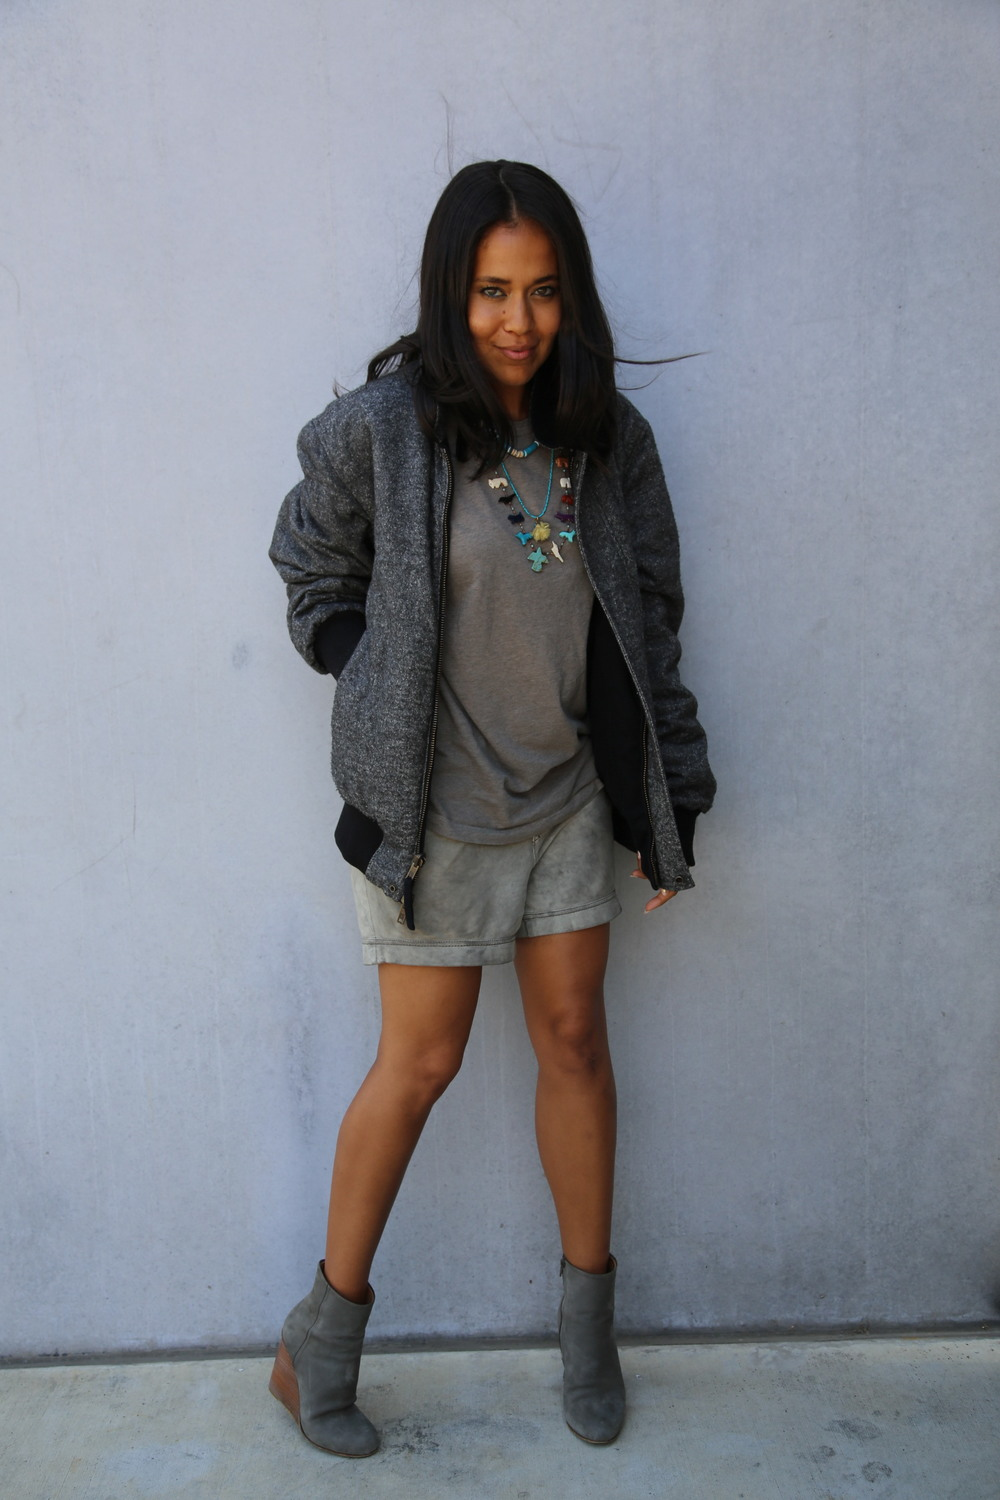 VANESSA-BELETIC-GREY-STREET-STYLE-FETISH-NECKLACE-LOS-ANGELES.JPG